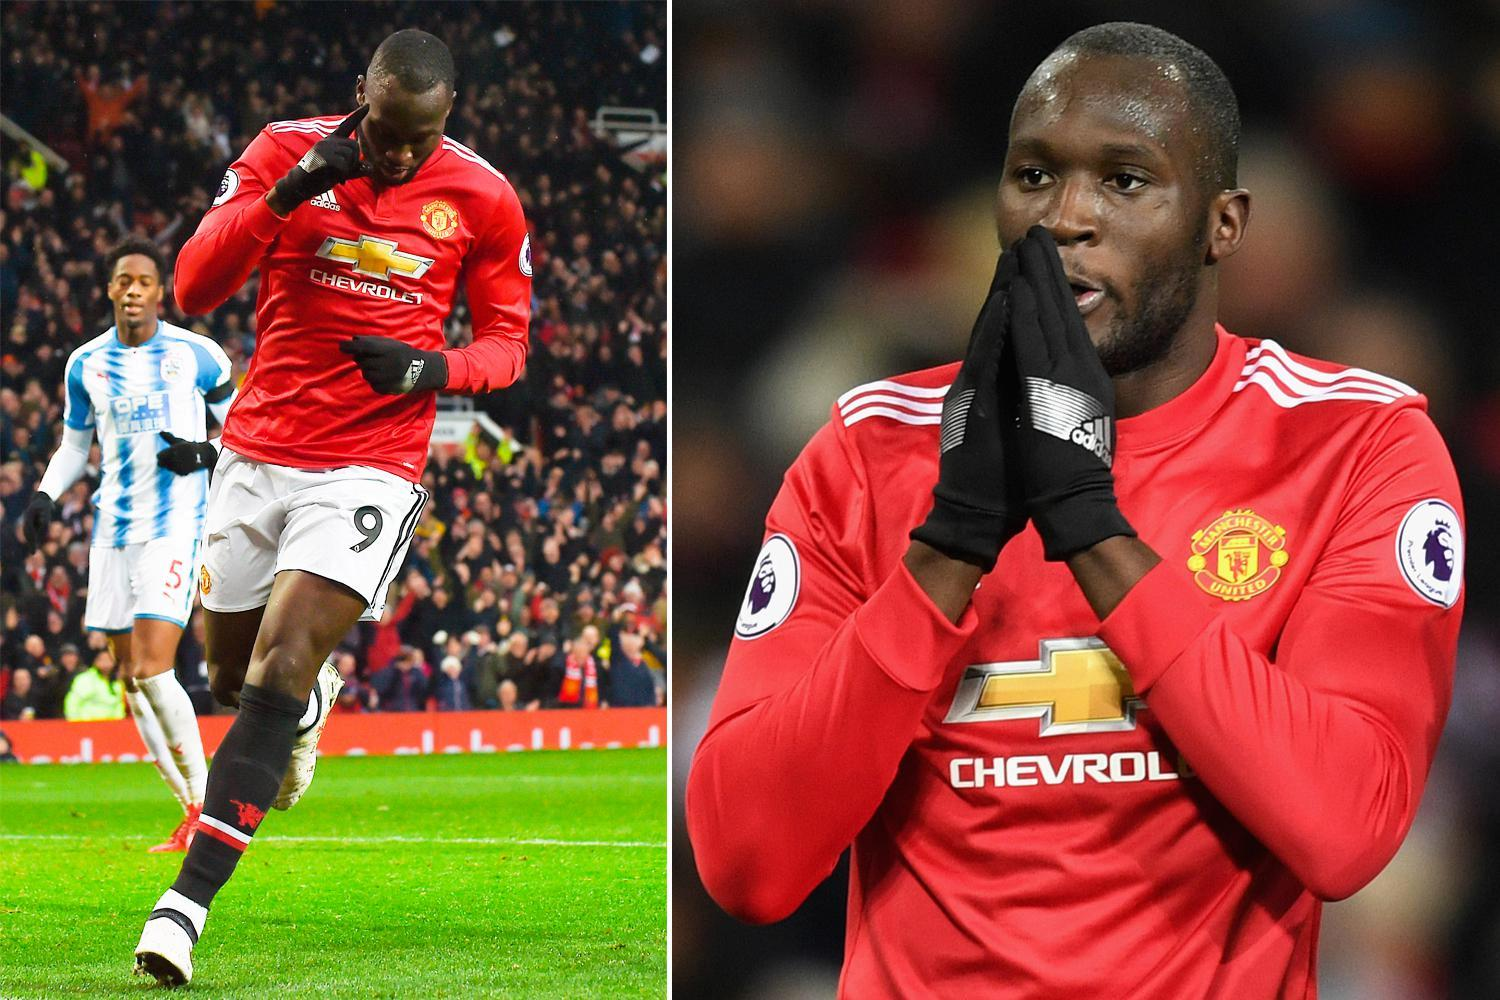 Manchester United star Romelu Lukaku scored his 12th Premier League goal of the season against Huddersfield… but all of those strikes have come against teams outside of the top eight